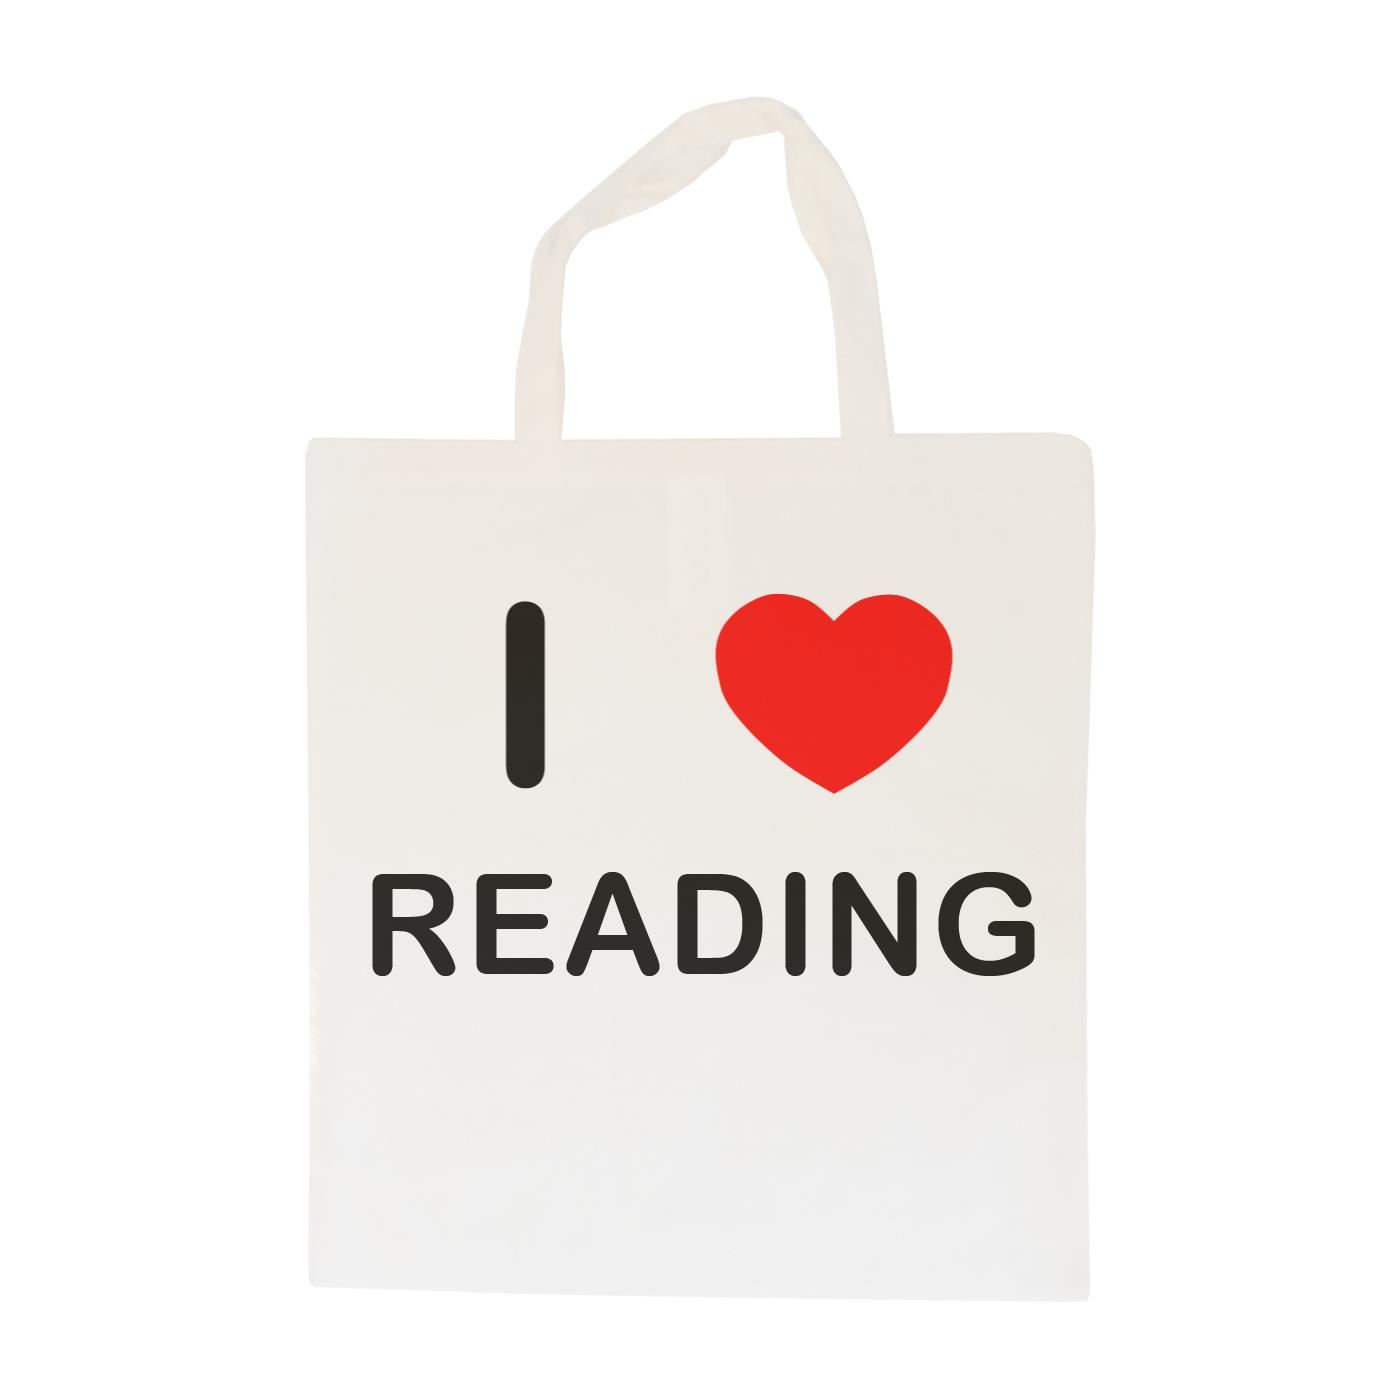 I Love Reading - Cotton Bag | Size choice Tote, Shopper or Sling